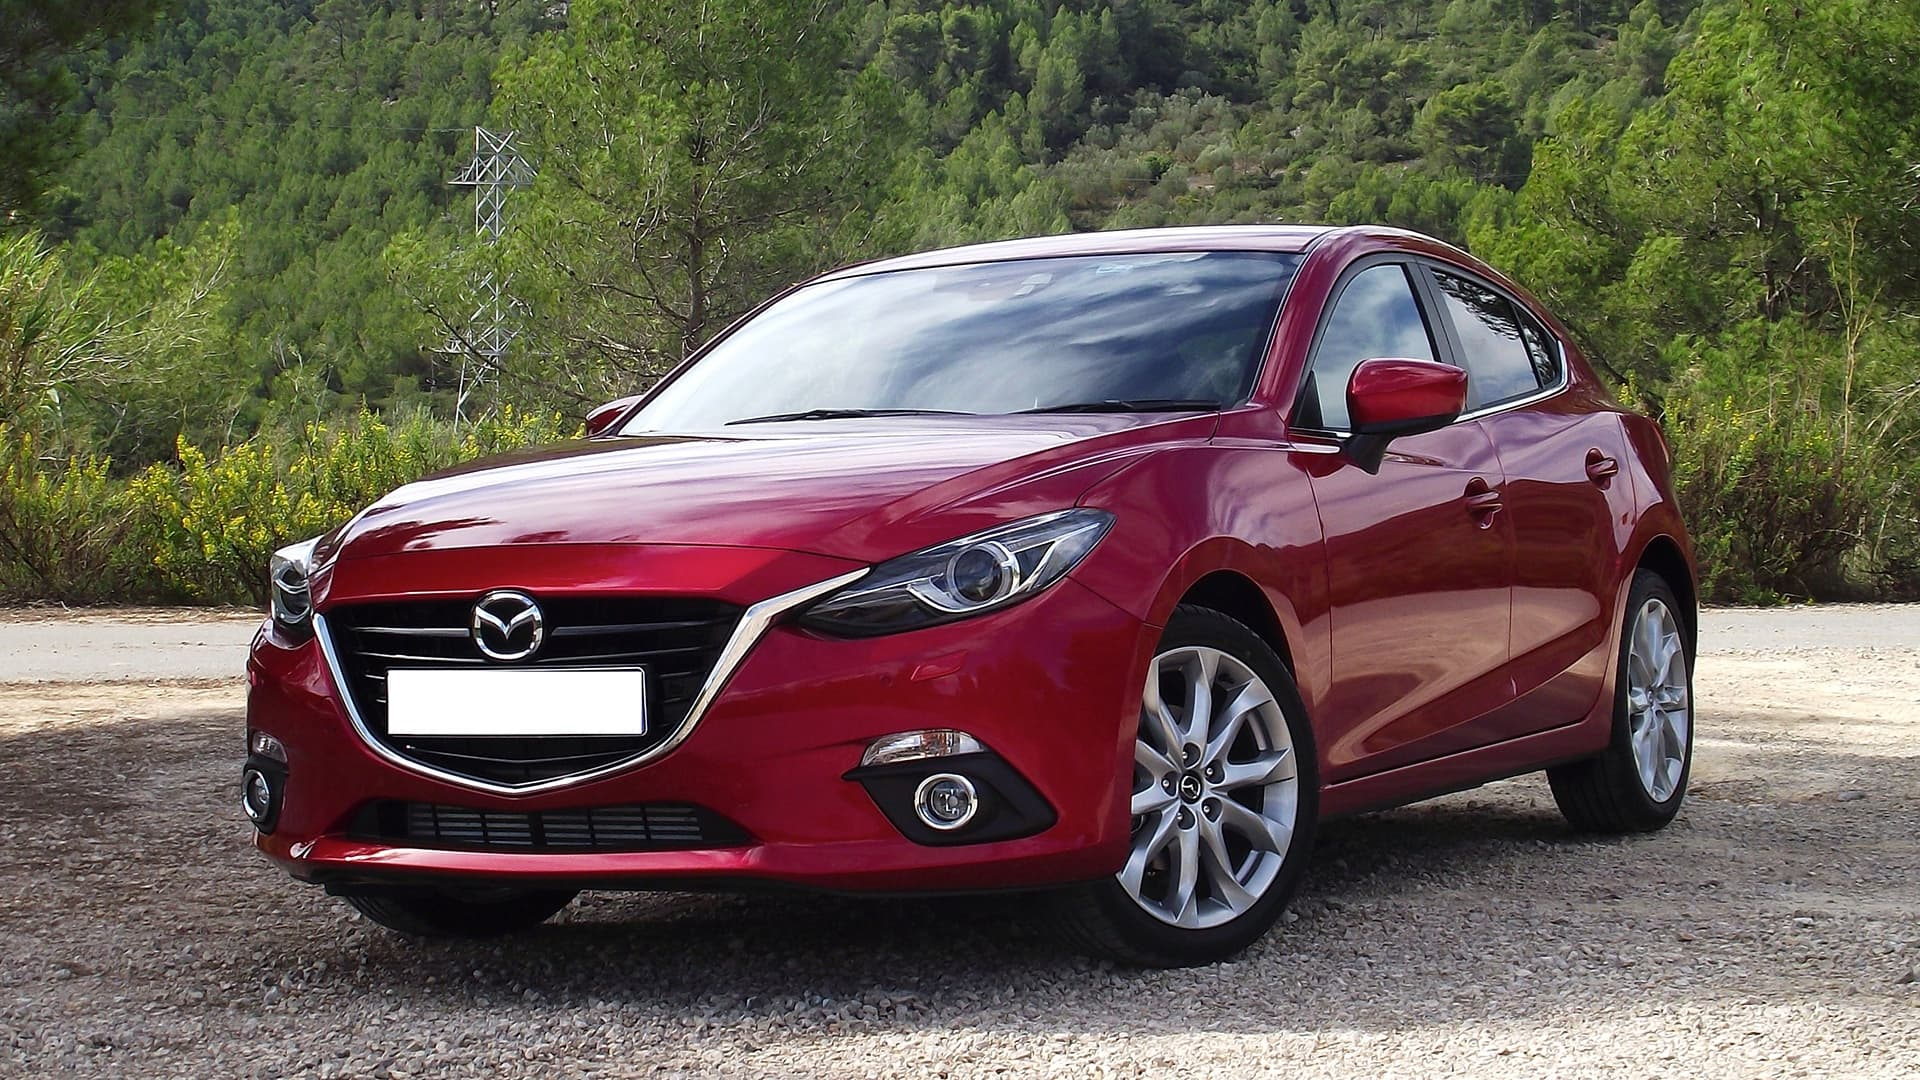 Mazda 3 2017 >> Mazda 3 2016 Sedan wallpapers HD High Quality Download